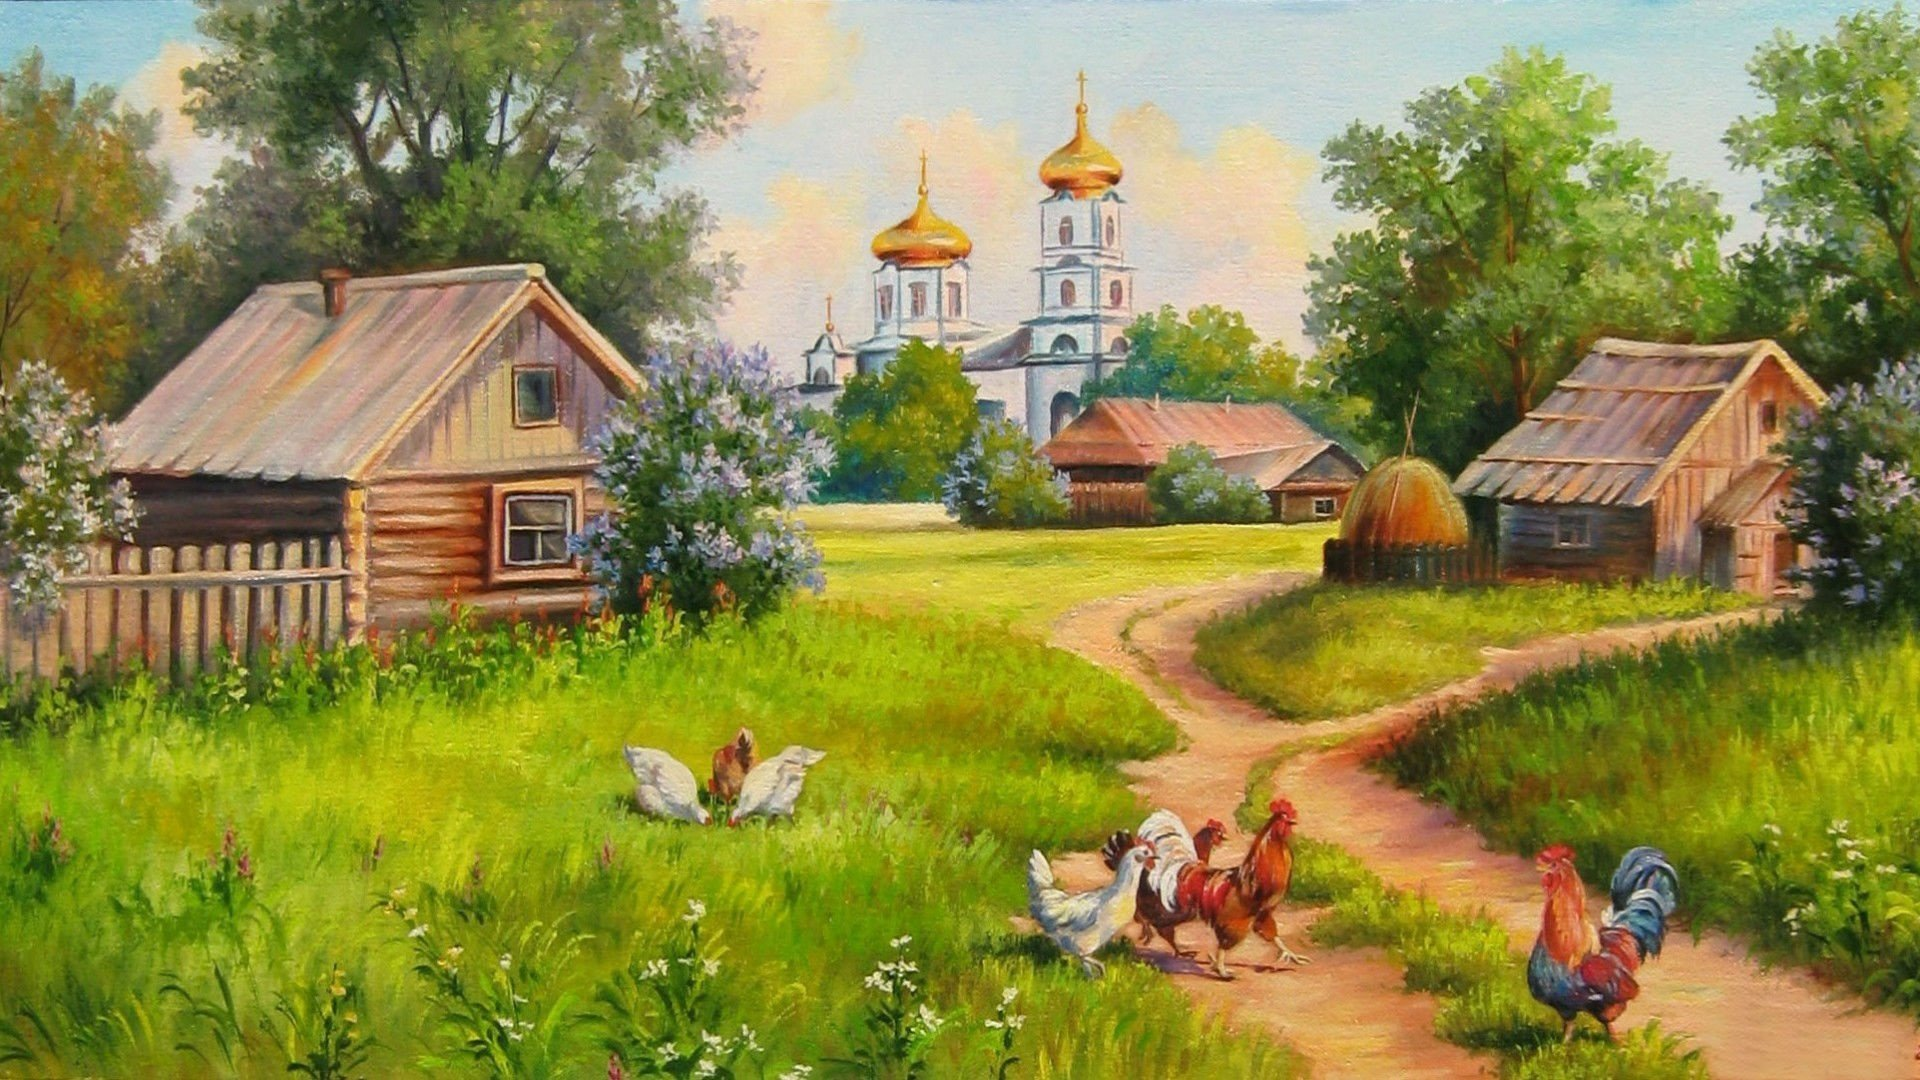 Village House Painting Wallpapers   1920x1080   700072 1920x1080